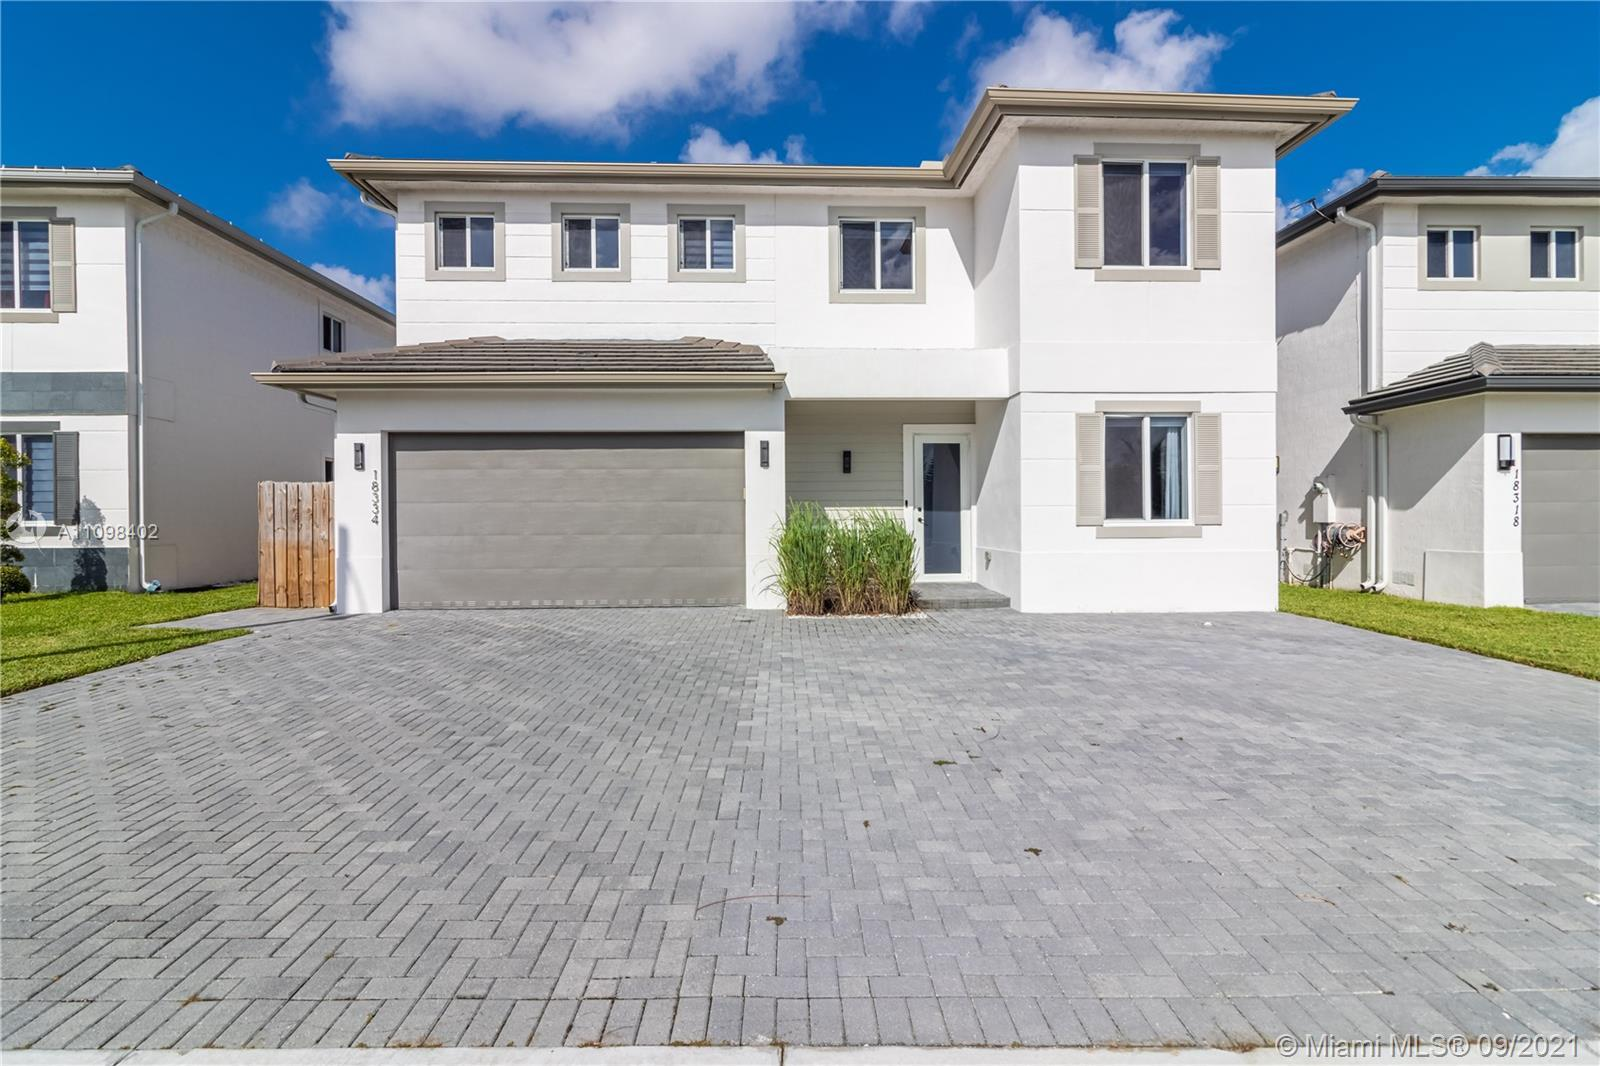 Newley constructed 2 story home with plenty to offer. This home will not disappoint, featuring 5 bed